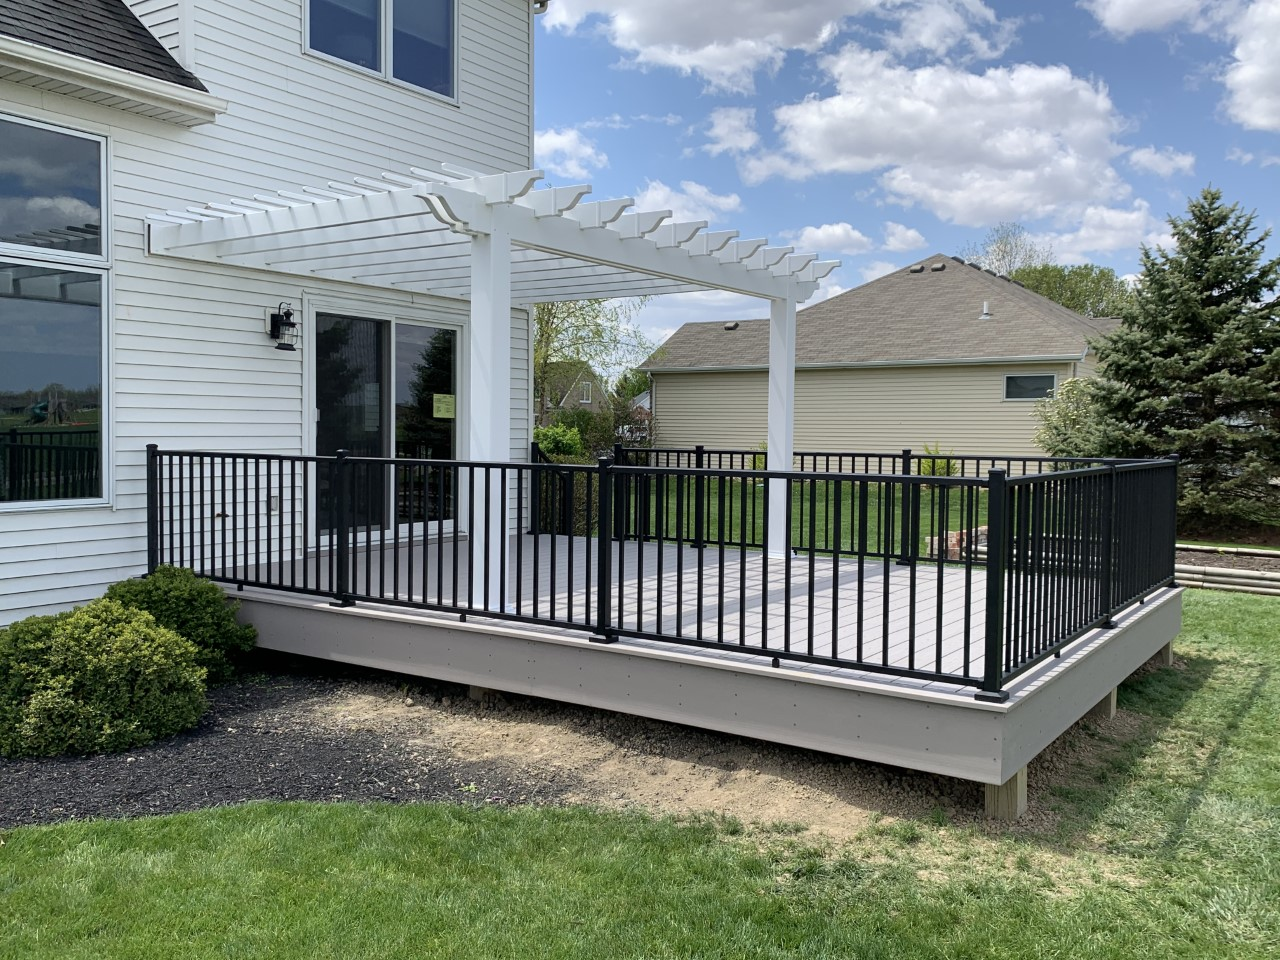 The-clients-love-this-new-low-maintenance-pergola-too